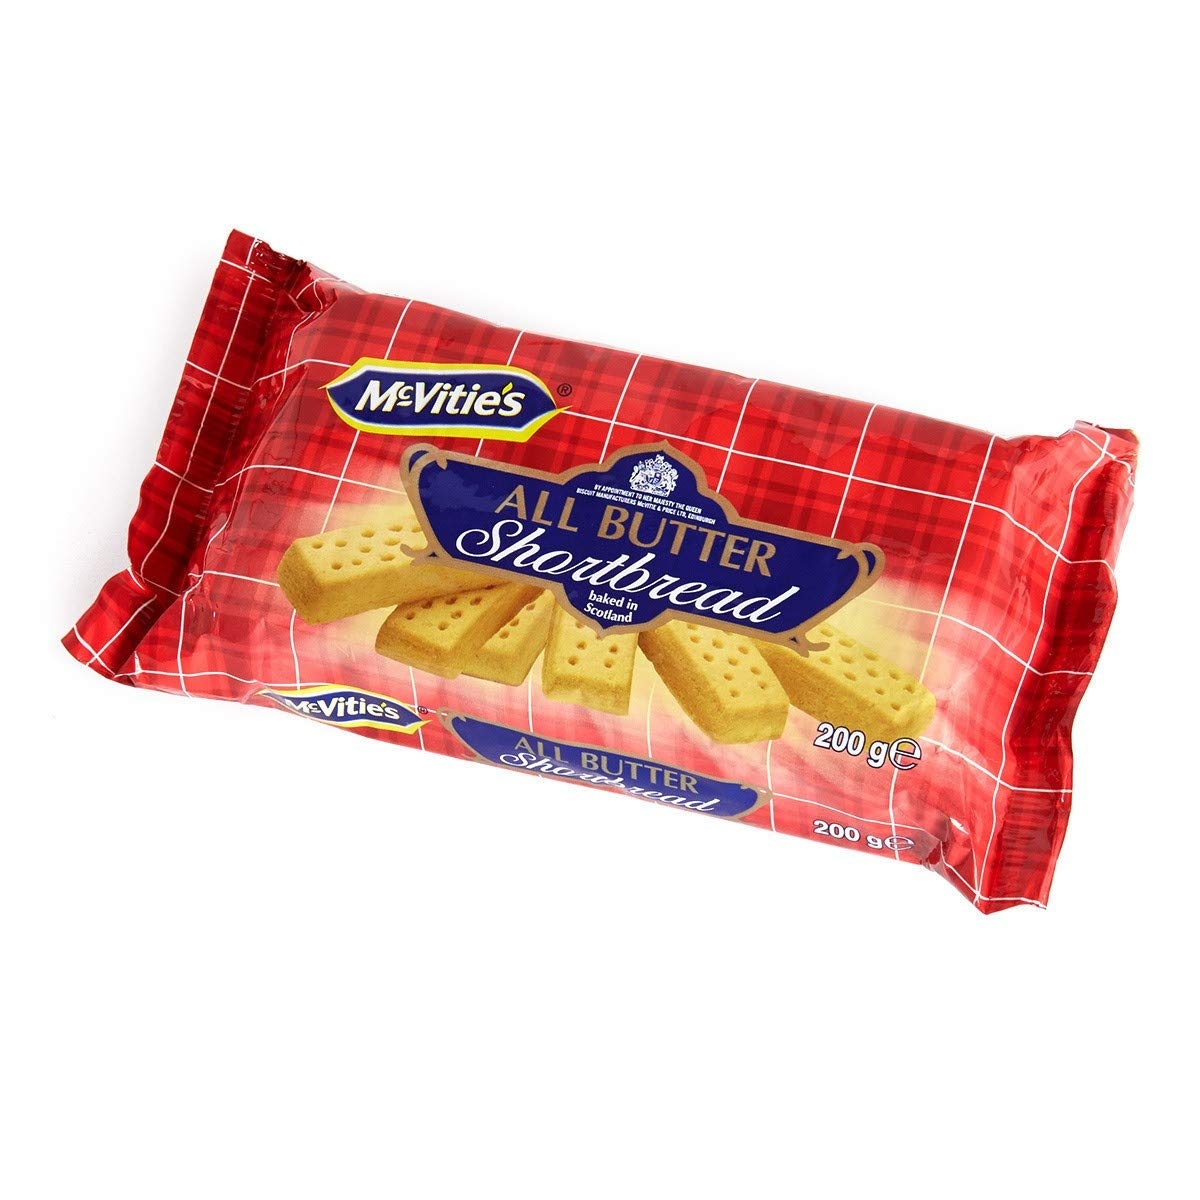 McVities All Butter Shortbread 200g(Pack of 4) by McVitie's